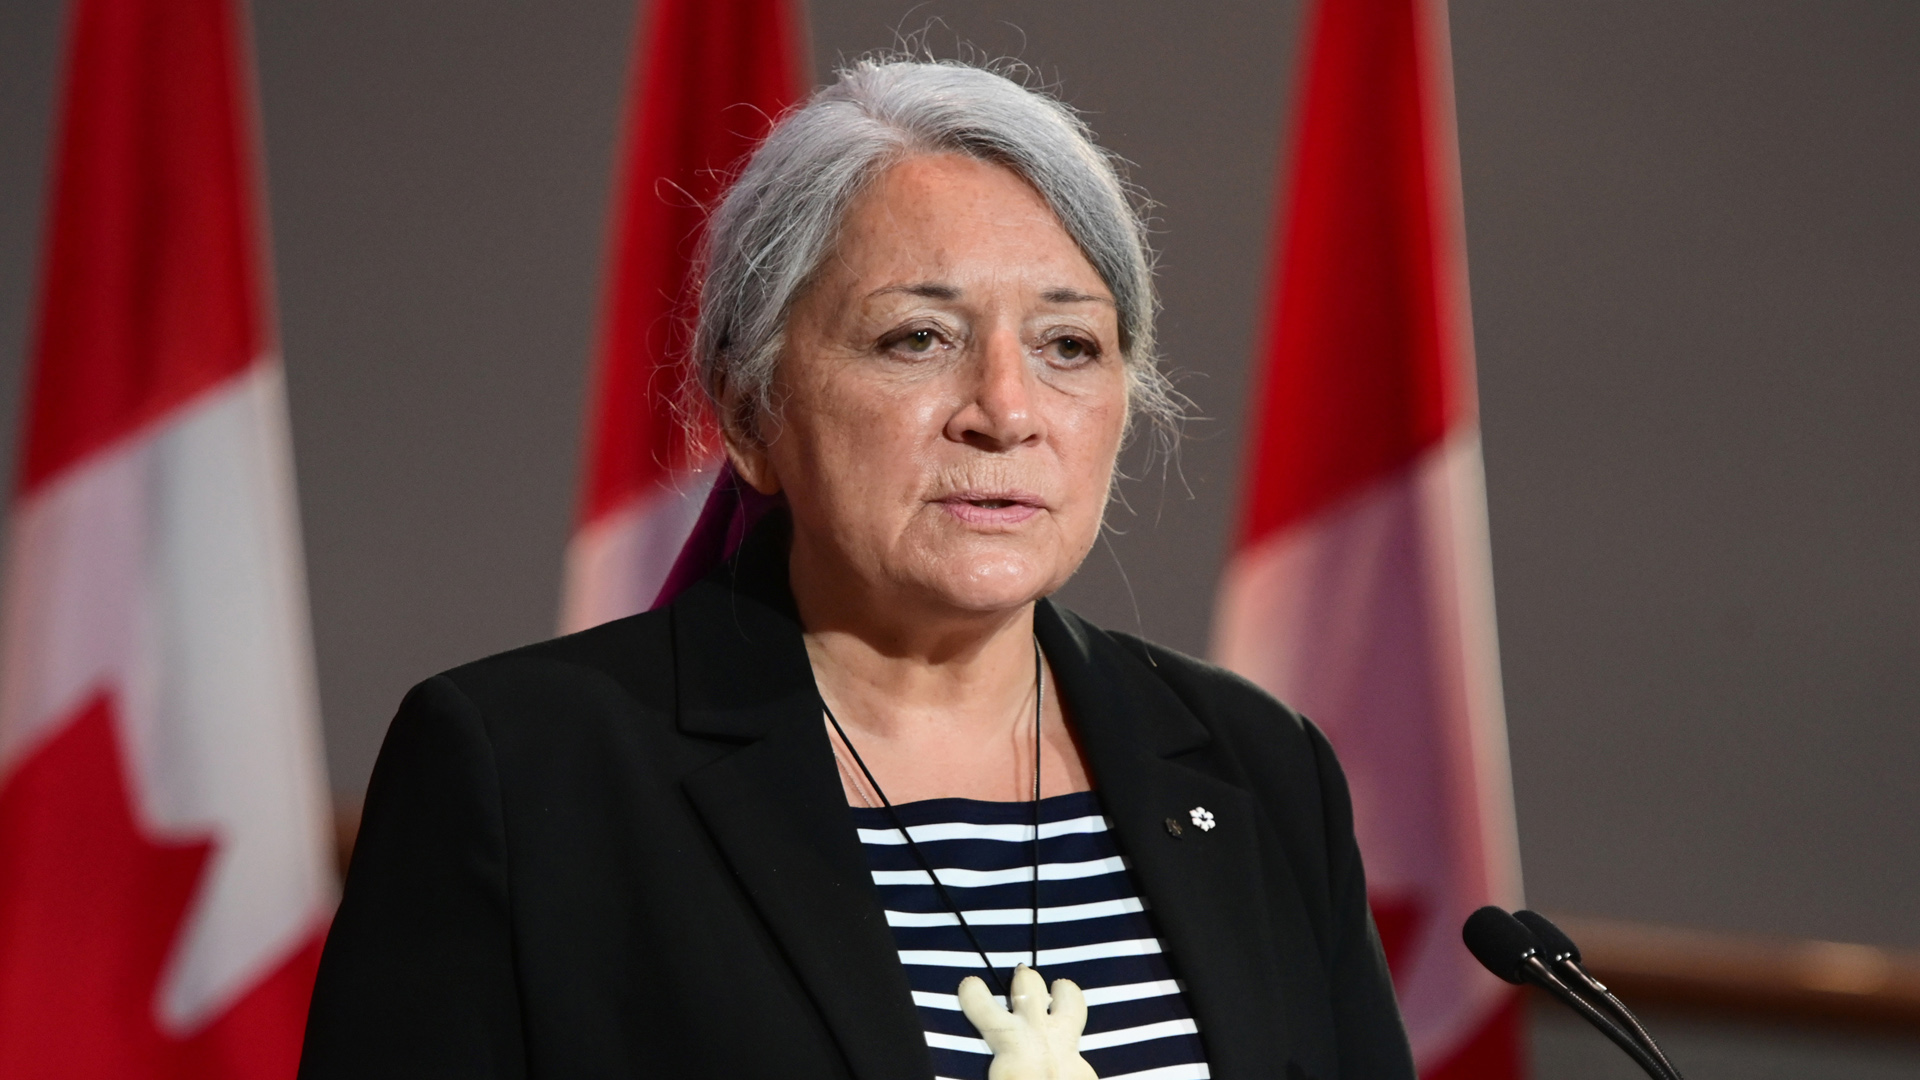 Trudeau announces first Indigenous Governor General